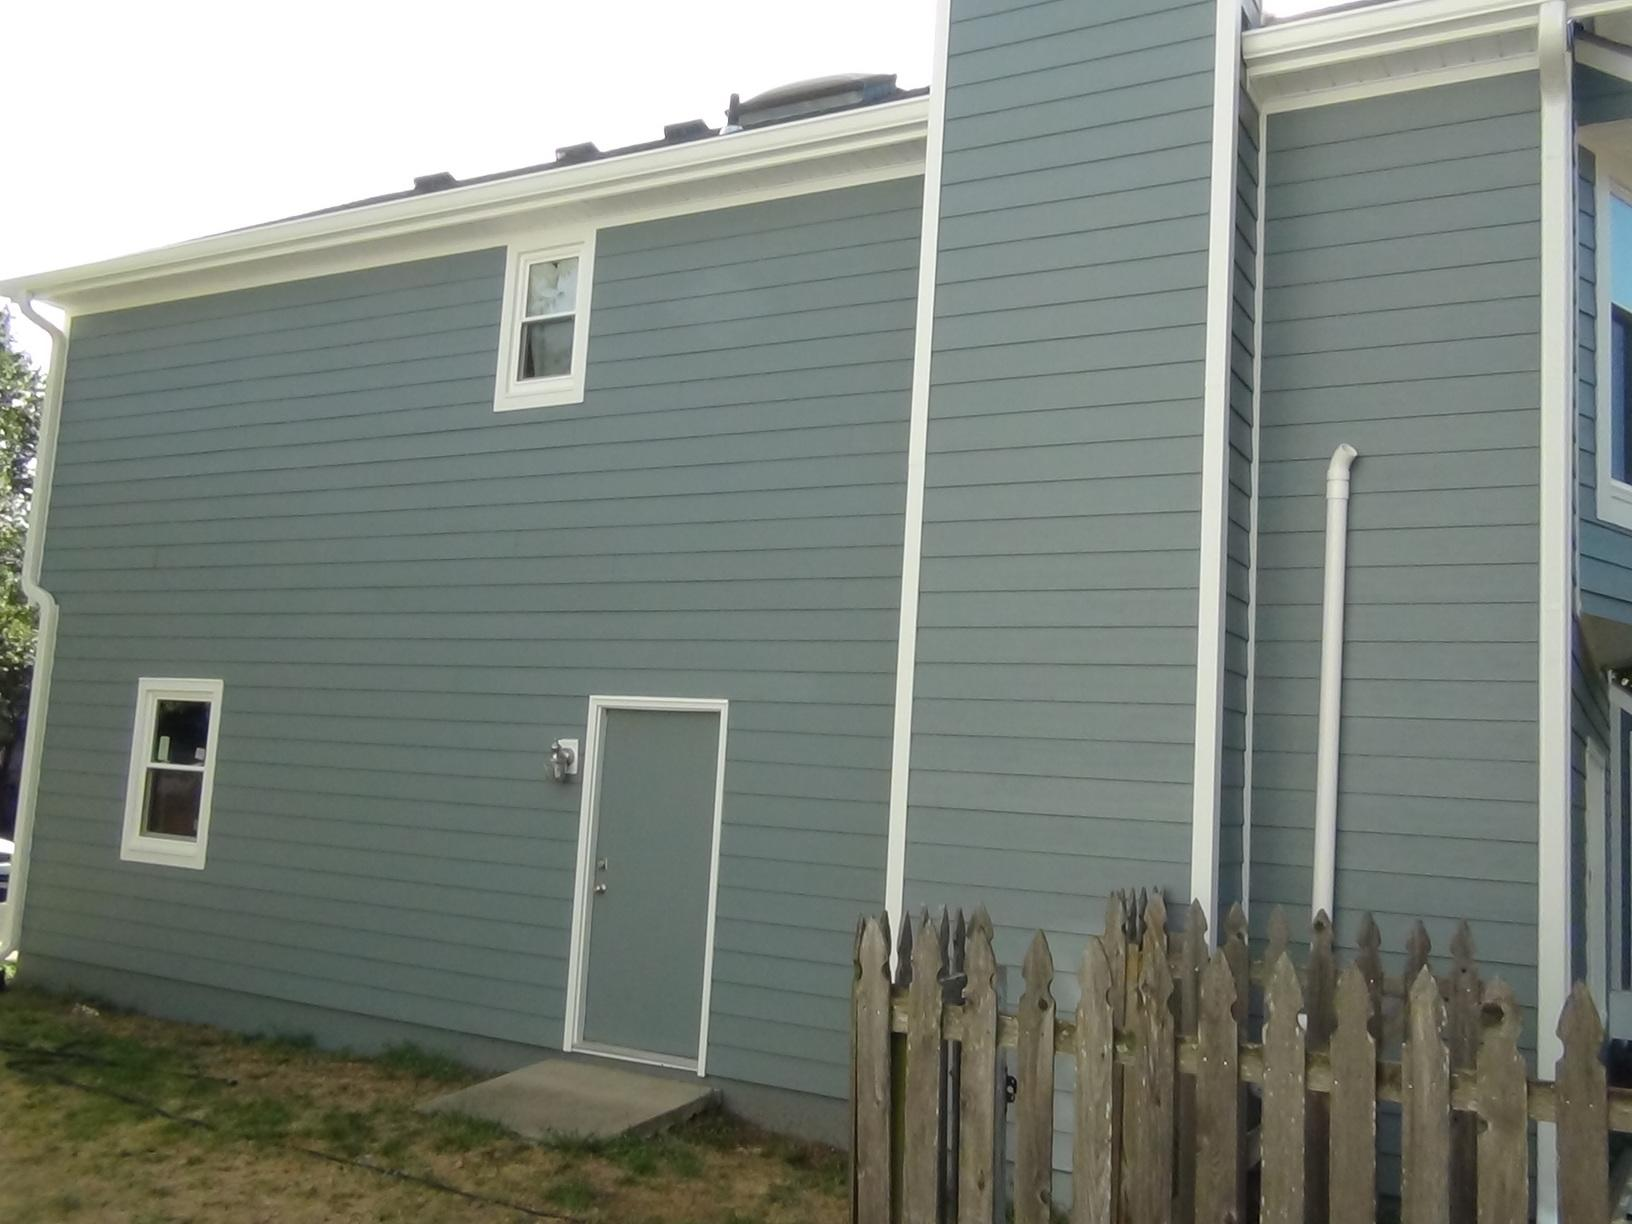 Replacement windows in Overland Park, KS